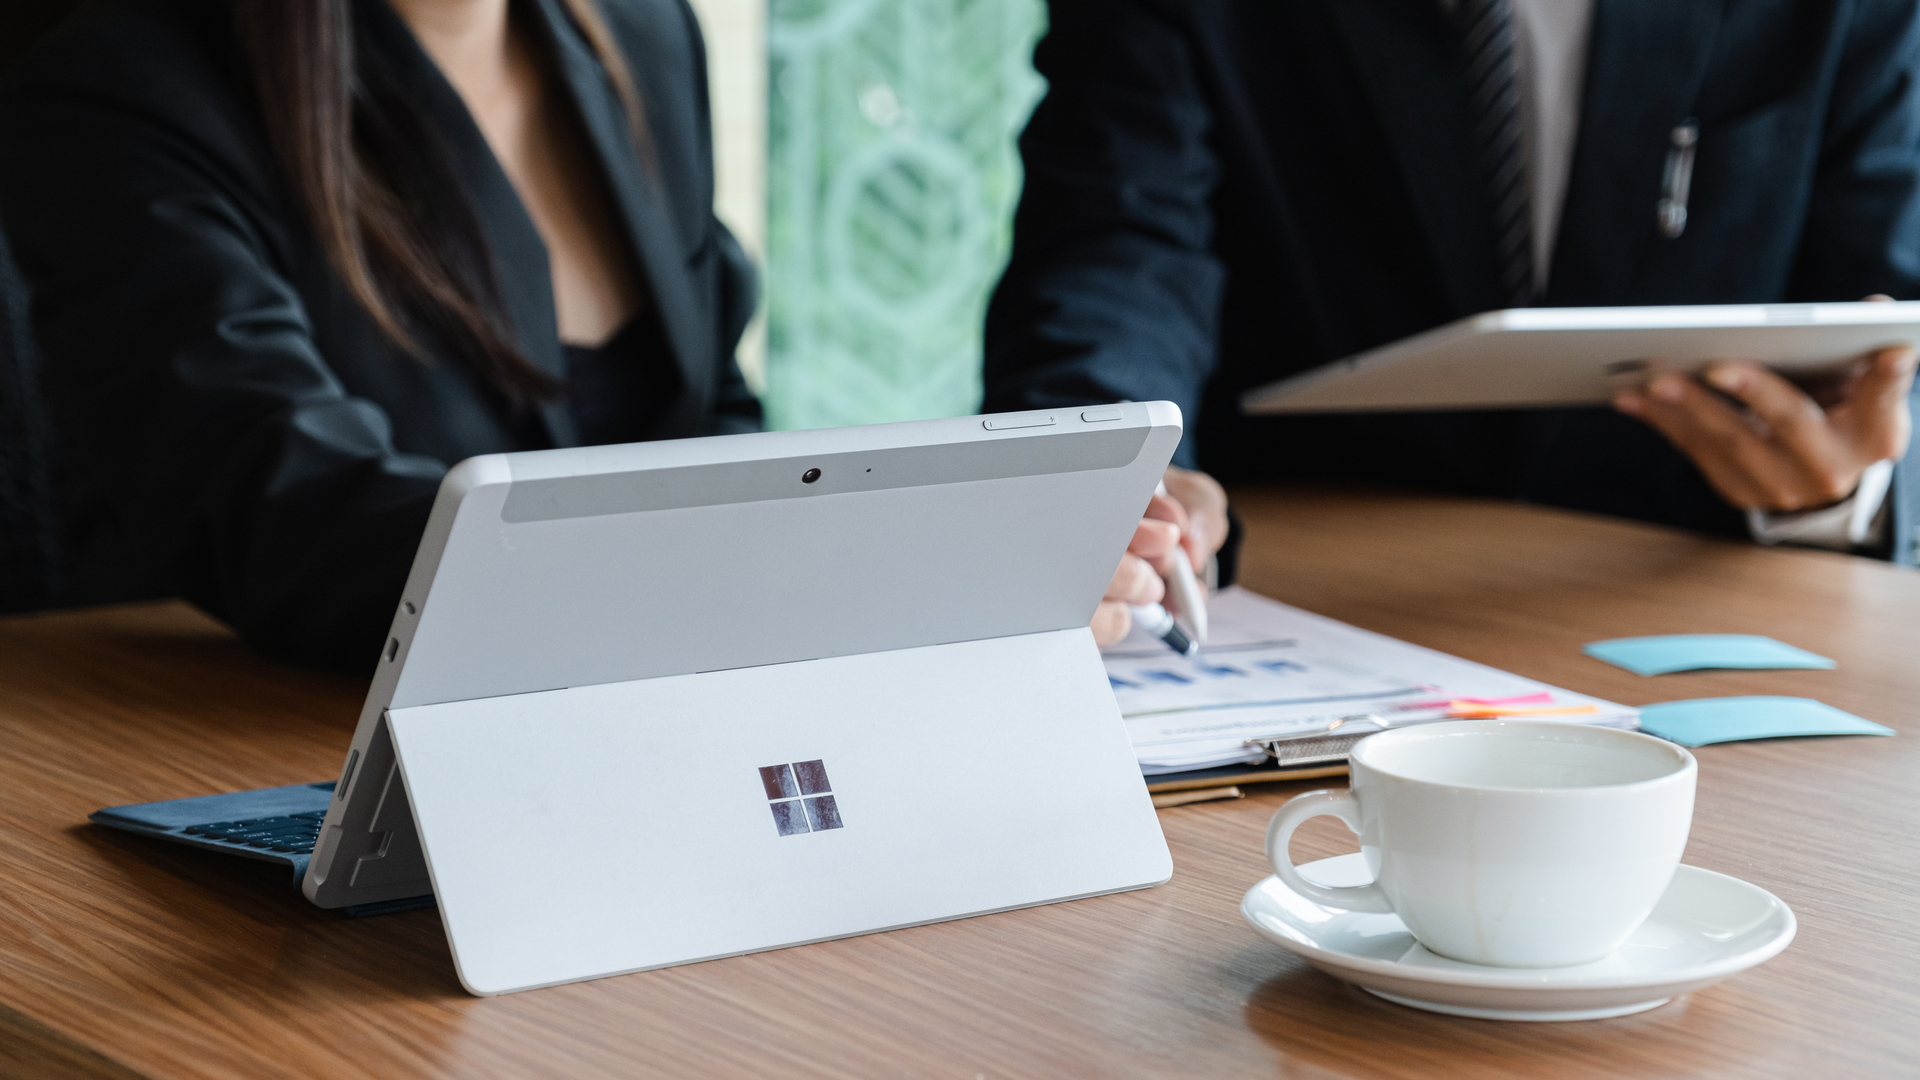 Microsoft releases critical Windows 10 security update – which doesn't work